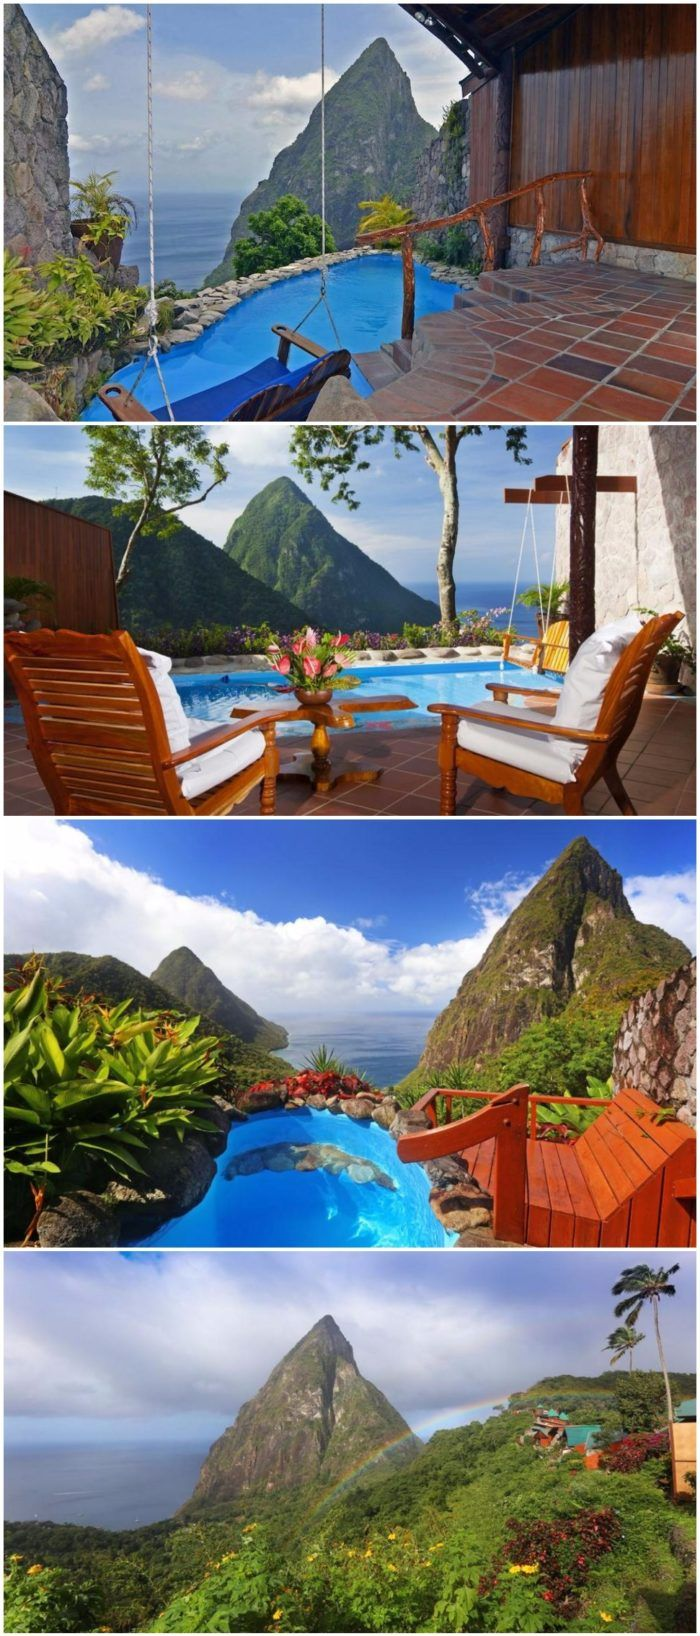 Ladera Resort St Lucia Which City To Travel Ladera Resort Ladera Resort St Lucia St Lucia Honeymoon